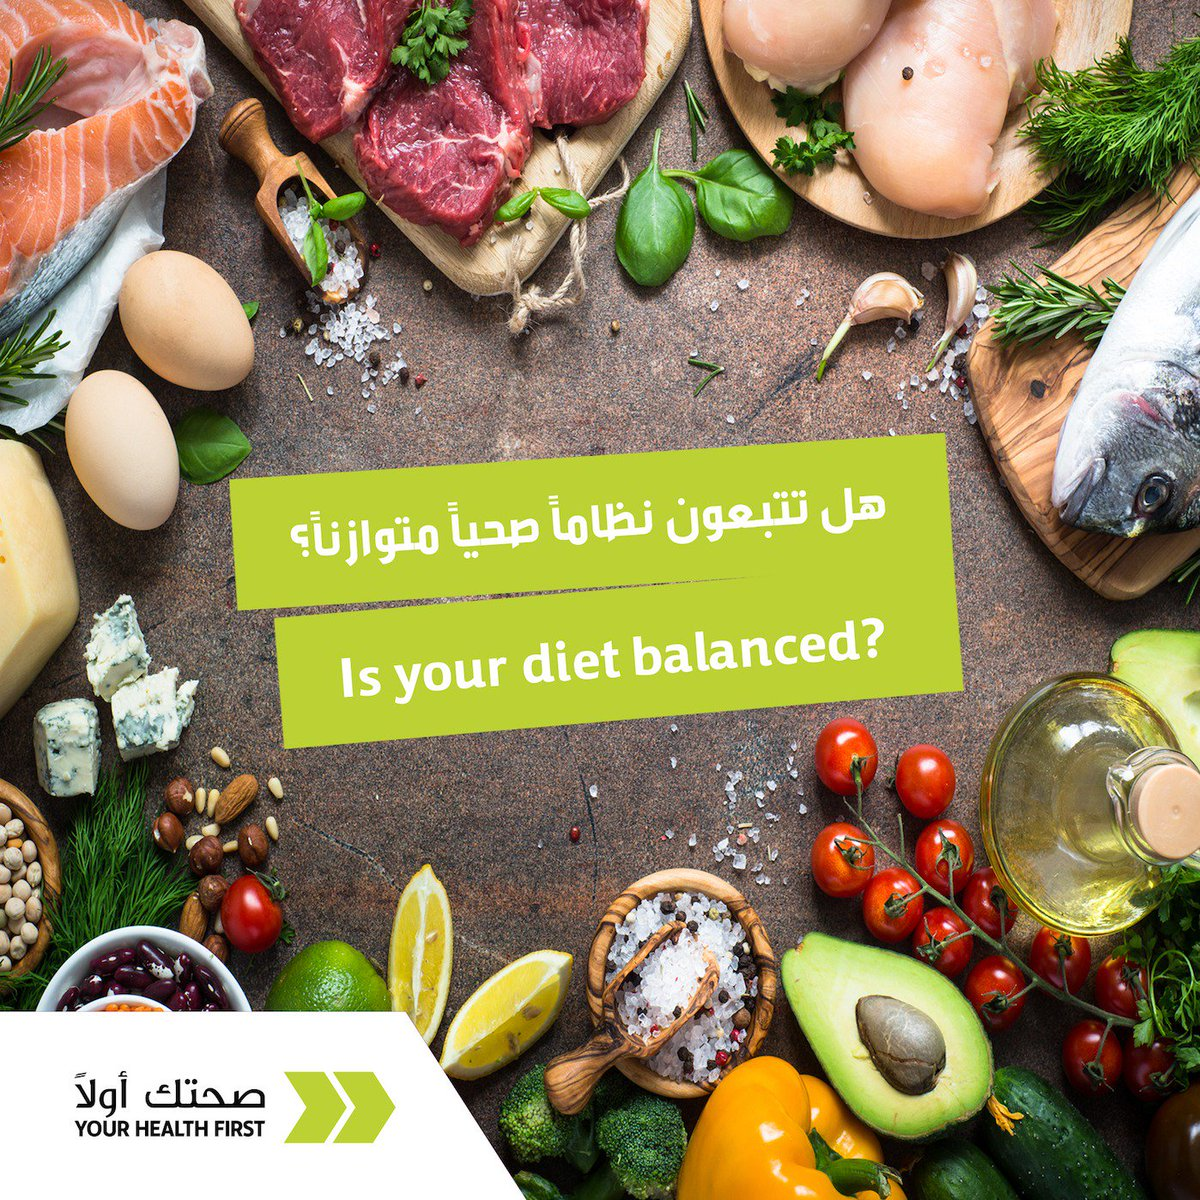 Food Groups Carbohydrates Protein Milk And Dairy Products Fruit And Vegetables Fats And Sugars Be Sure To Eat In Moderation And Limit Your